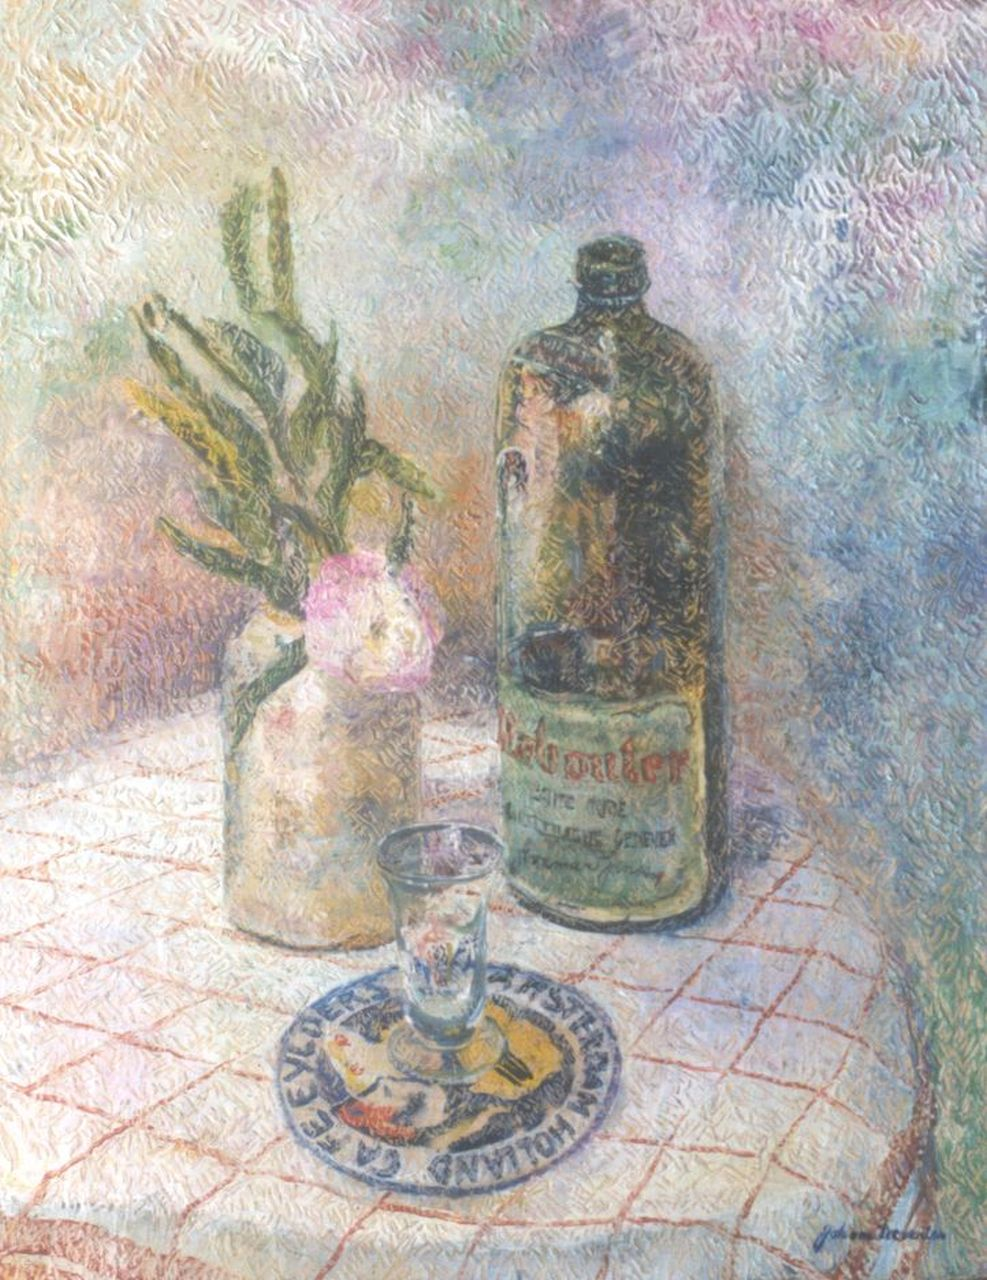 John van Deventer | A still life with a jug, oil on canvas, 60.4 x 47.0 cm, signed l.r.